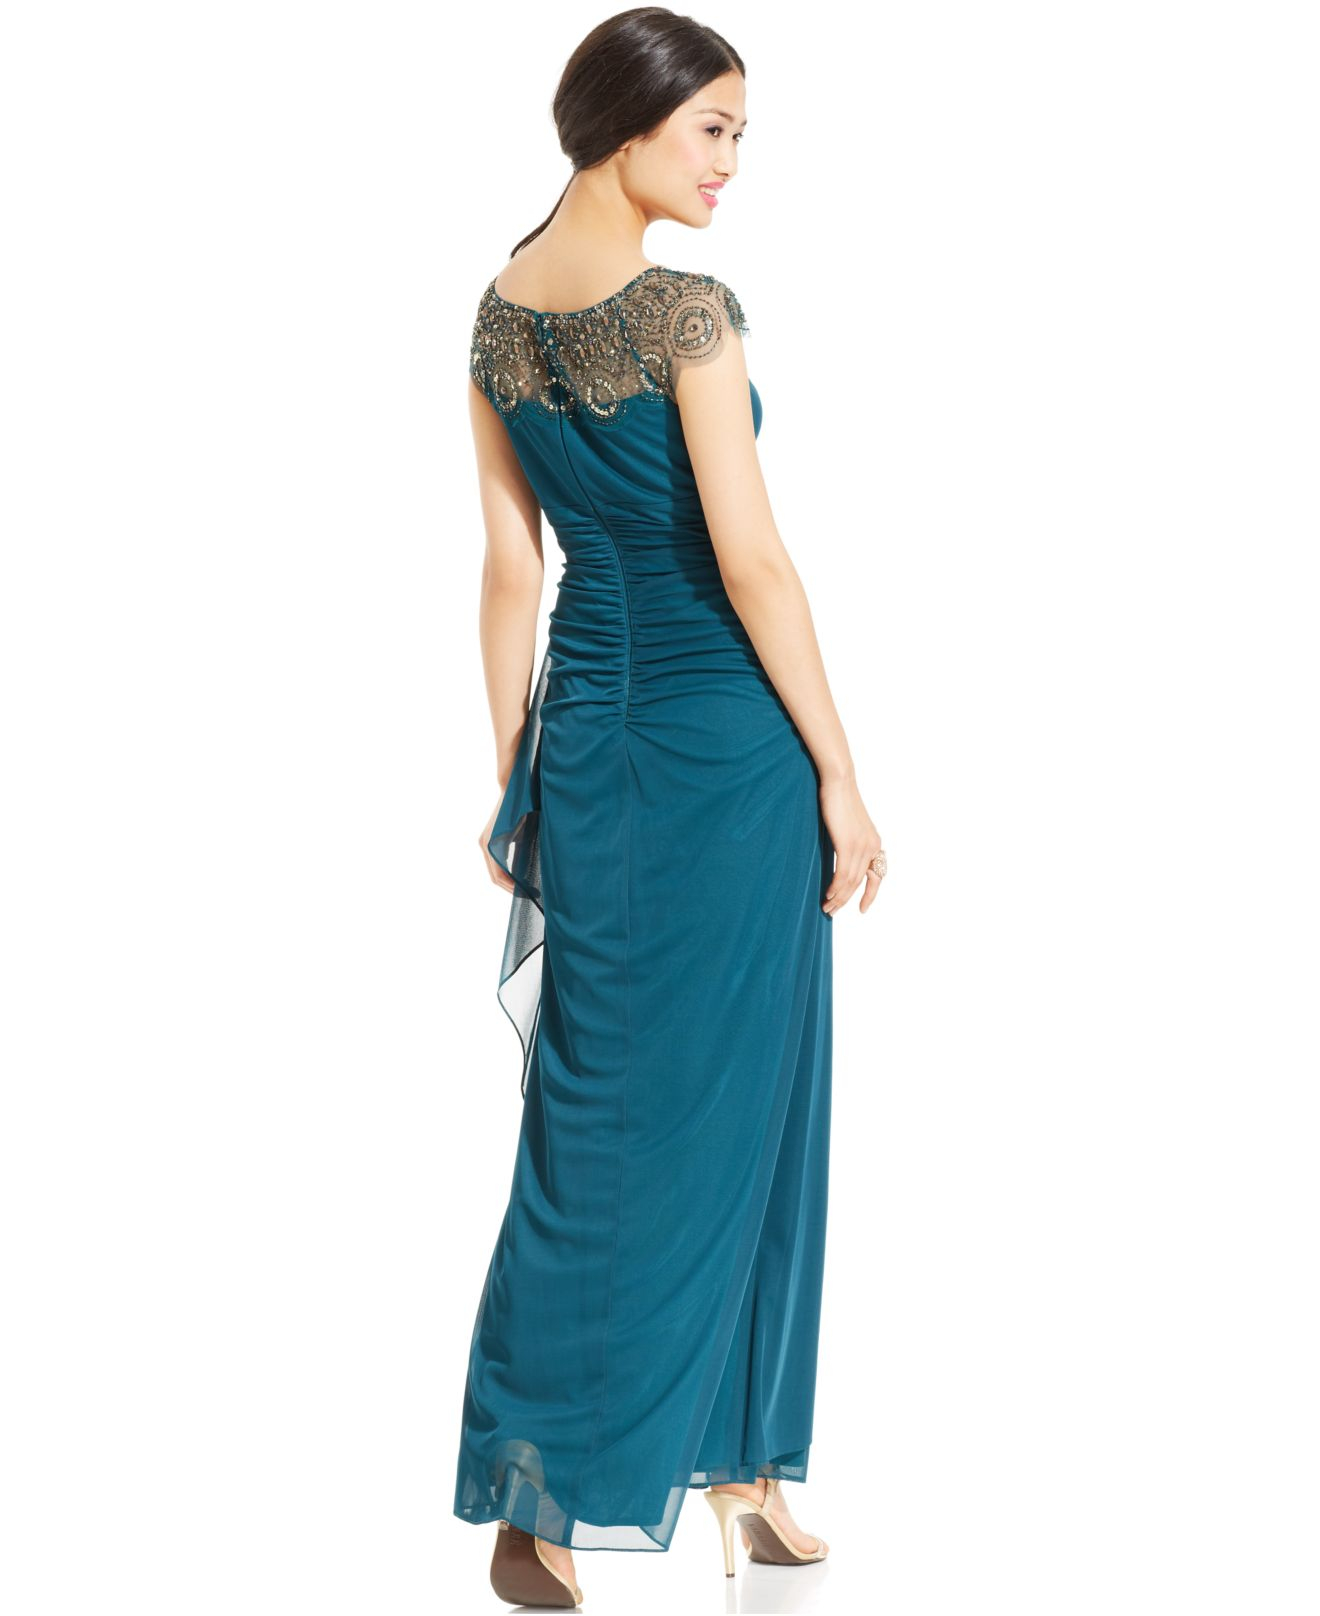 a6dc18d72 Xscape Petite Cap-sleeve Illusion Beaded Gown in Green - Lyst